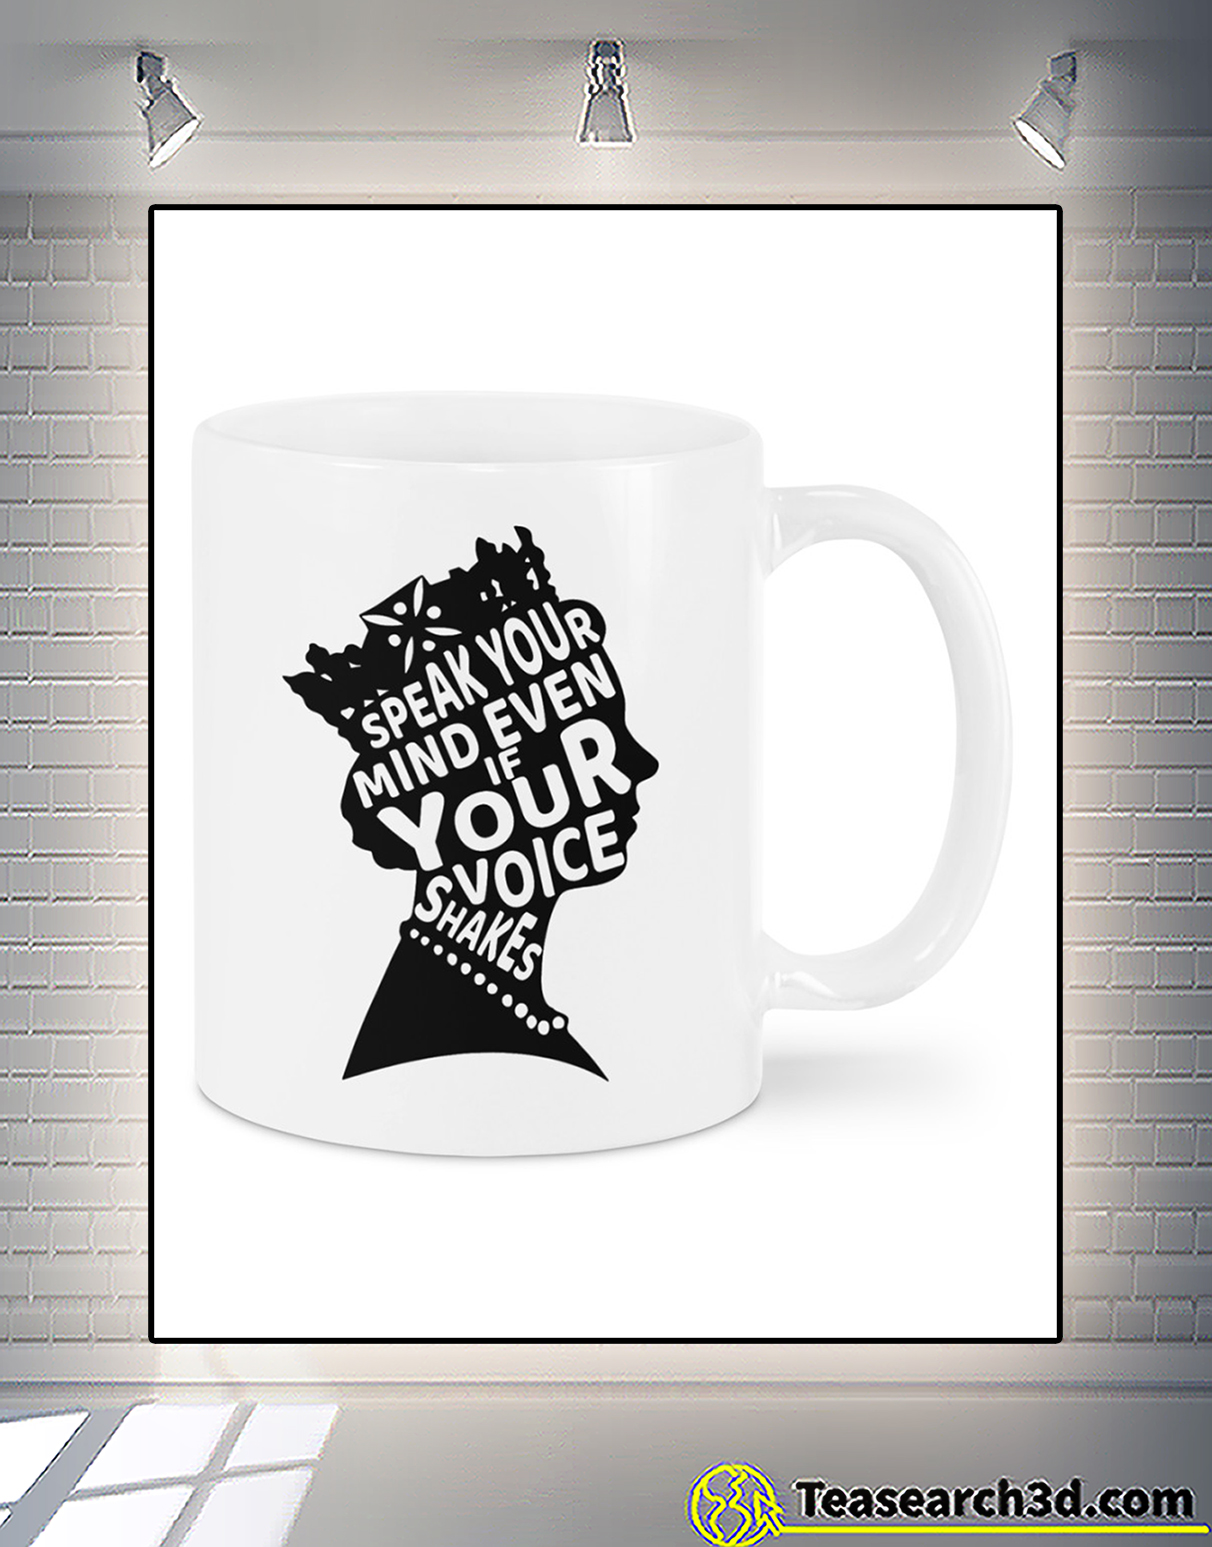 Speak your mind even if your voice shakes mug